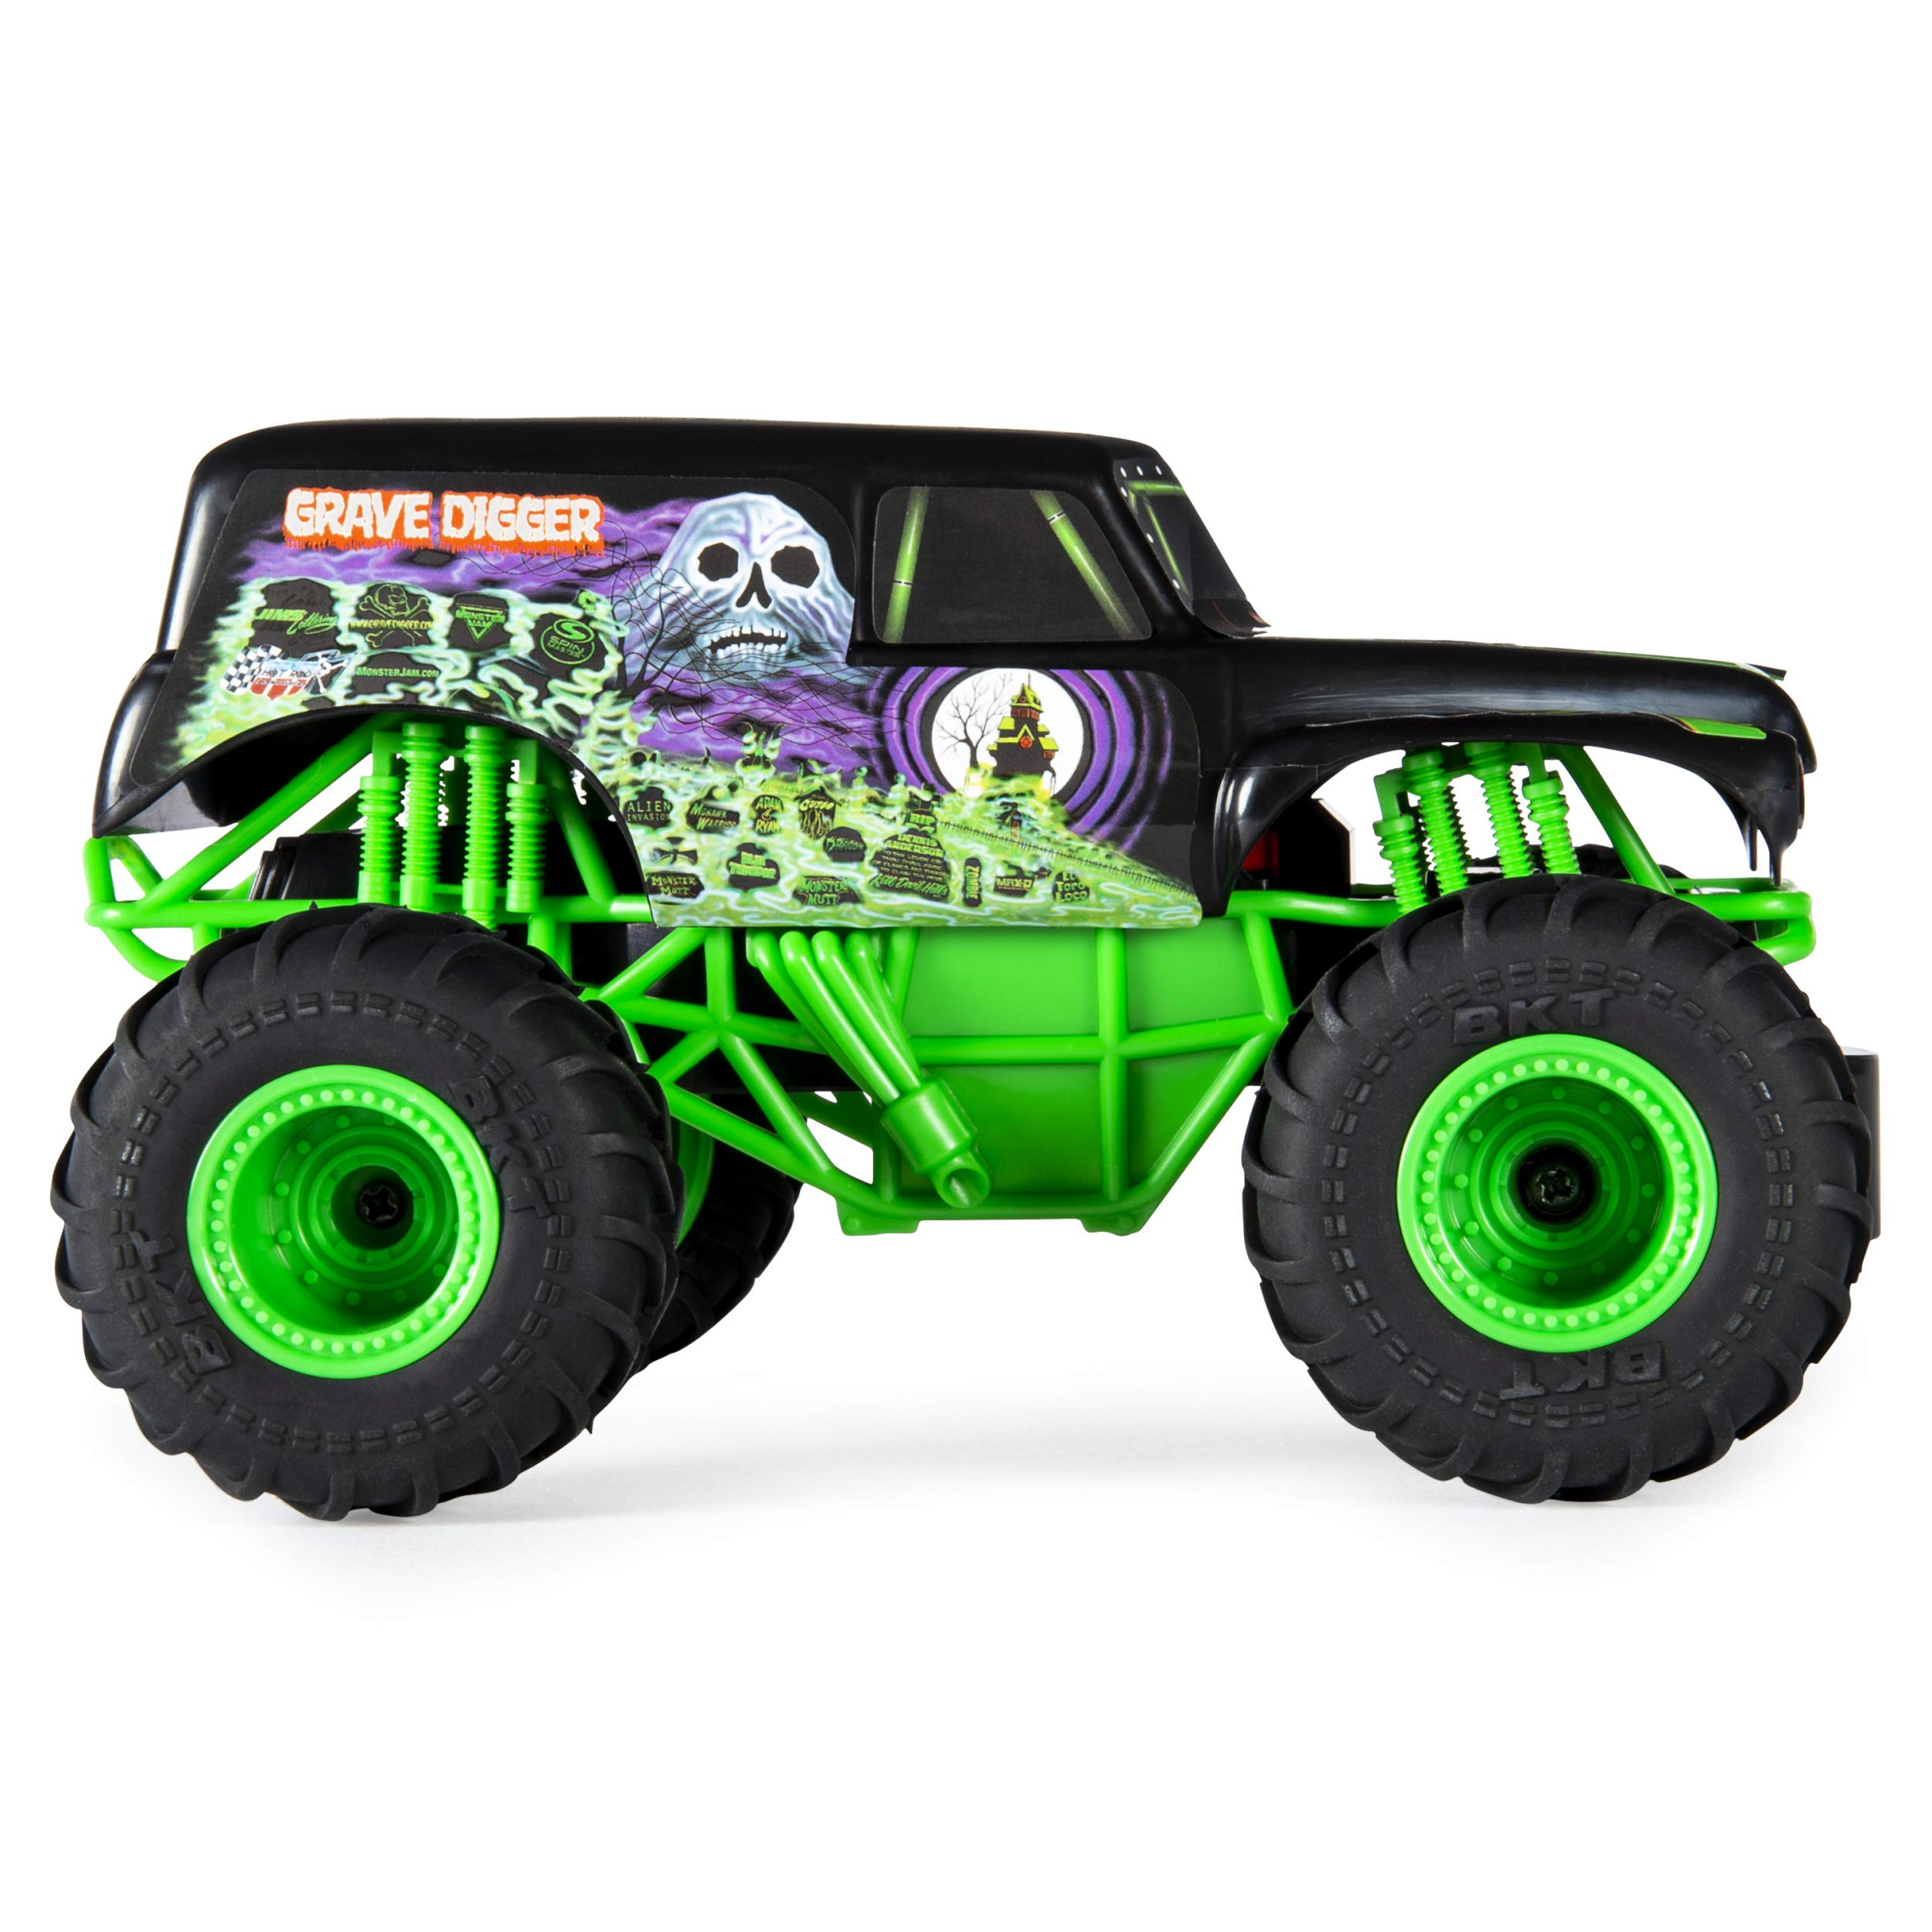 Monster Jam Official Grave Digger Remote Control Monster Truck, 1:24 Scale, 2.4 GHz, for Ages 4 and Up by Monster Jam (Image #4)